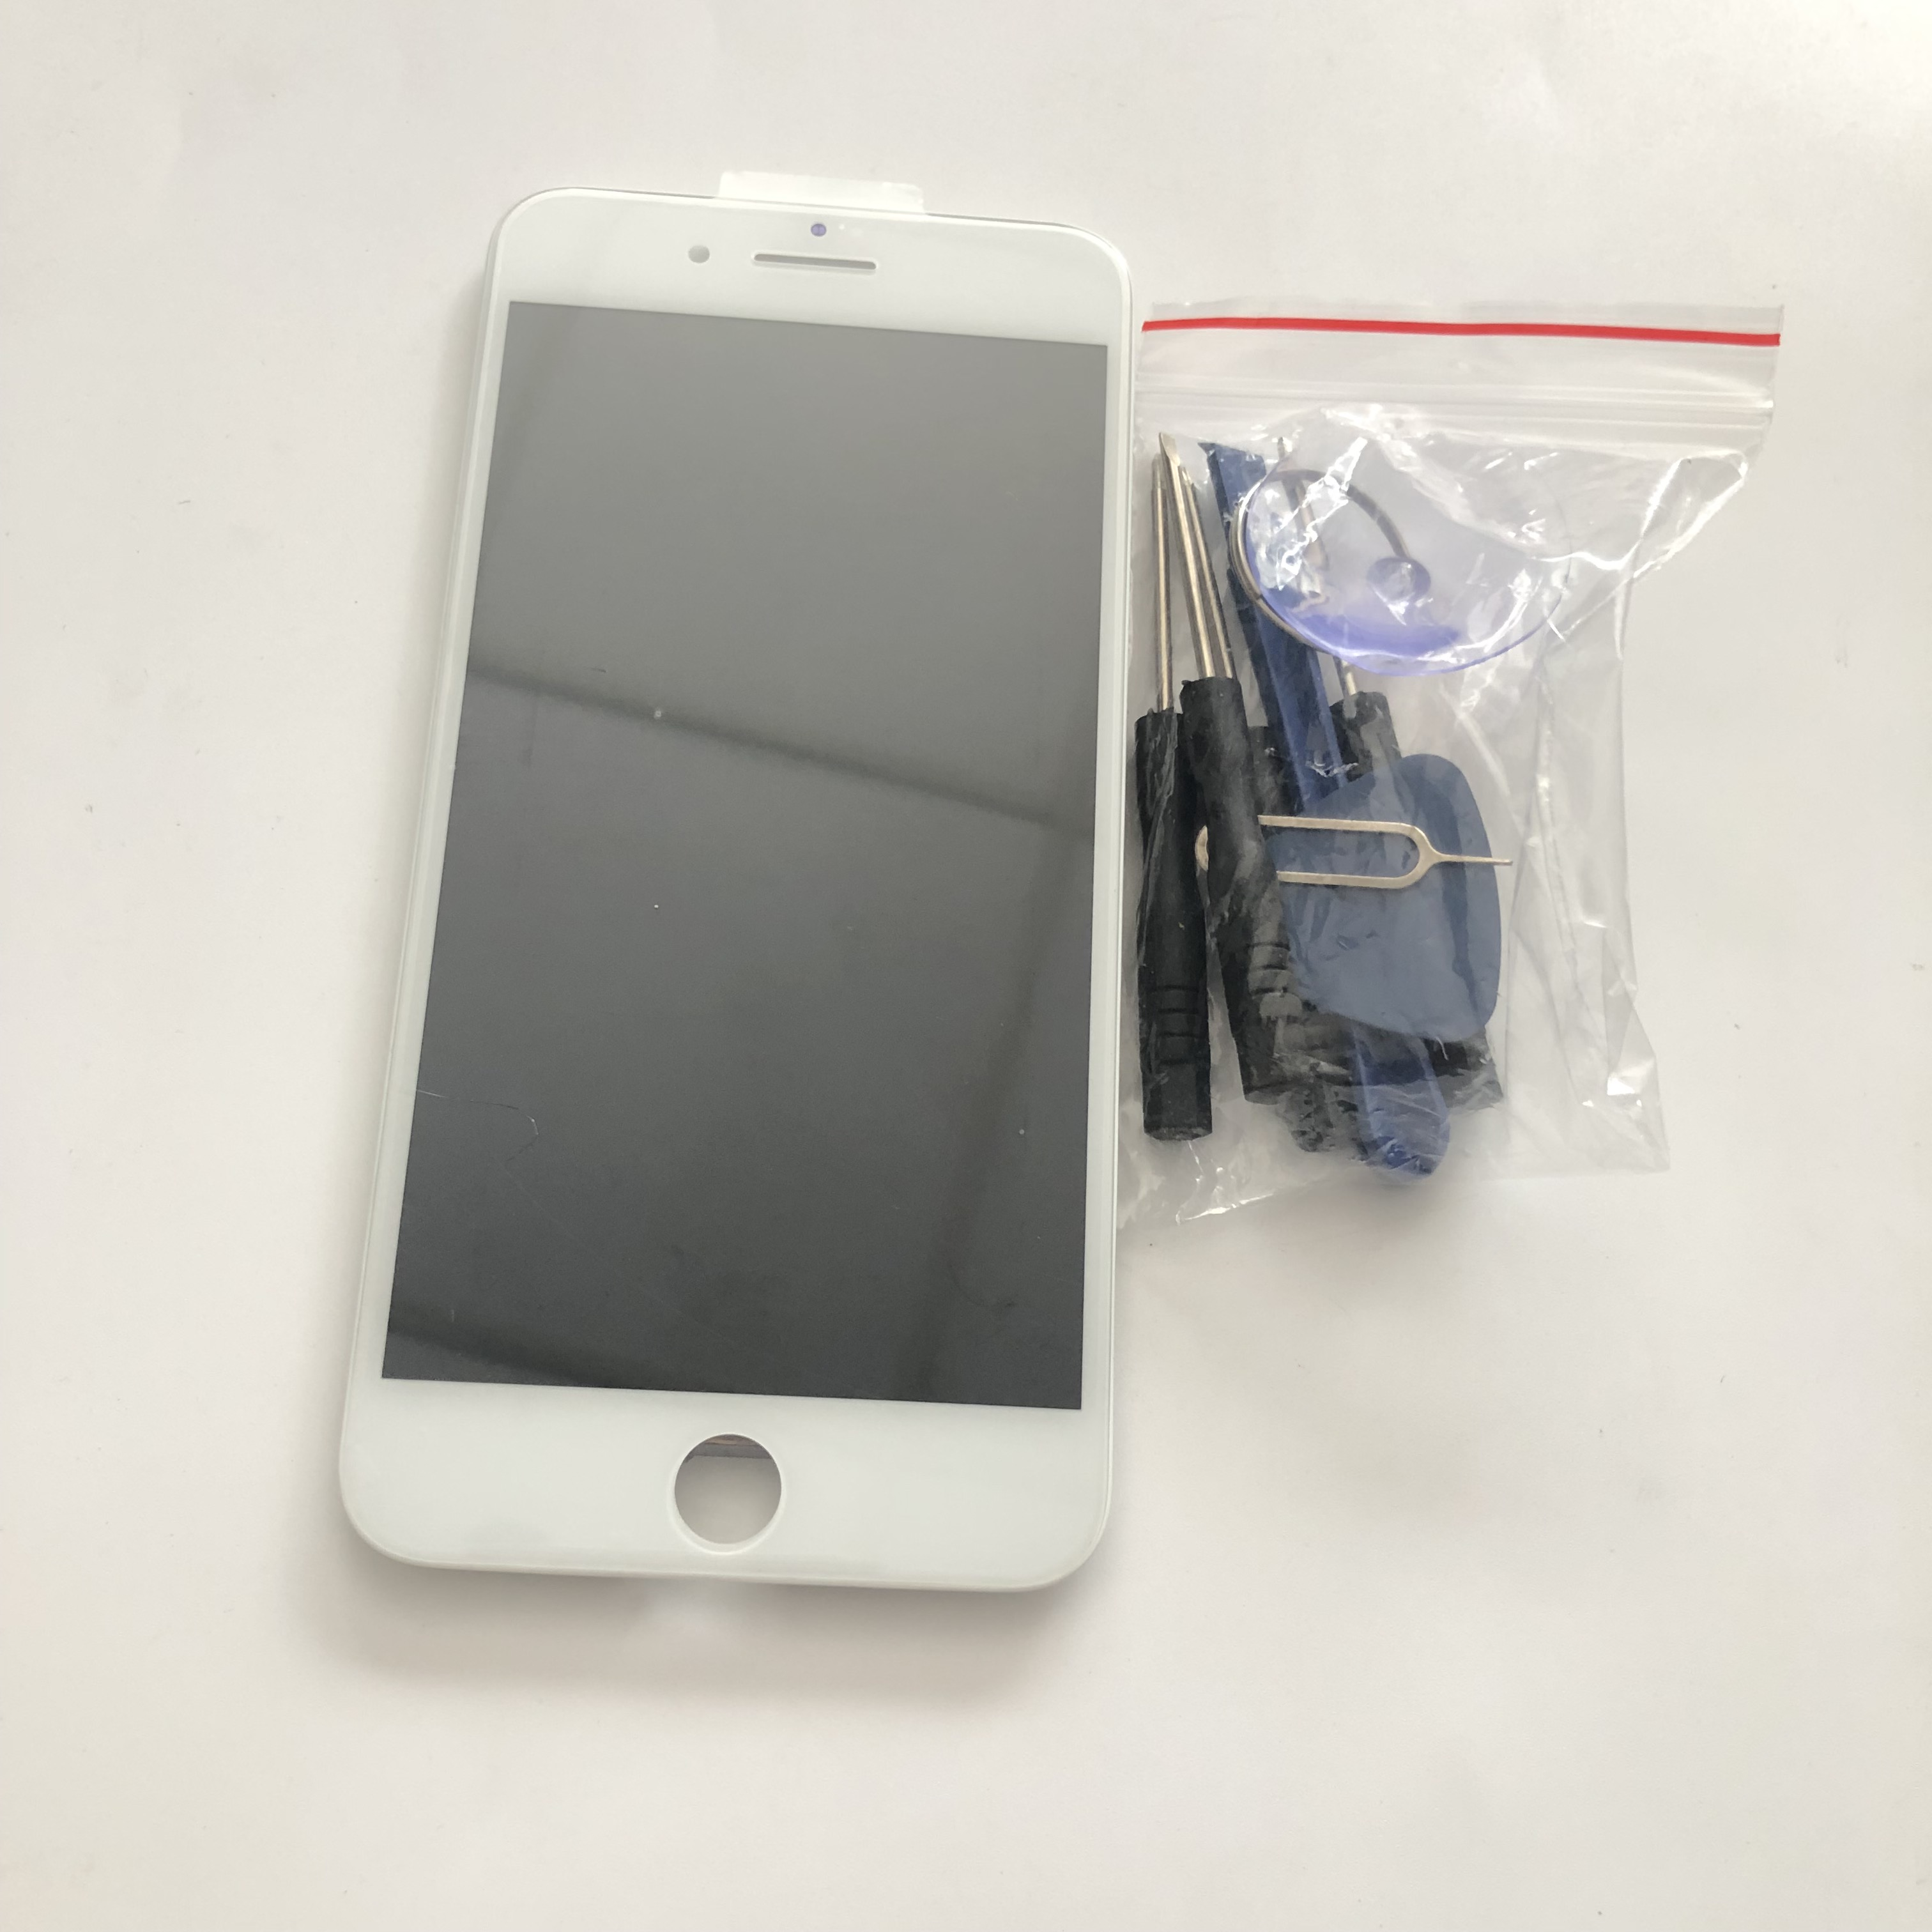 LCD + Screen For Iphone 5c For Iphone 7 7 Plus For Iphone 6 Plus For Iphone 8 8 Plus Touch Screen Digitizer With Free Gifts